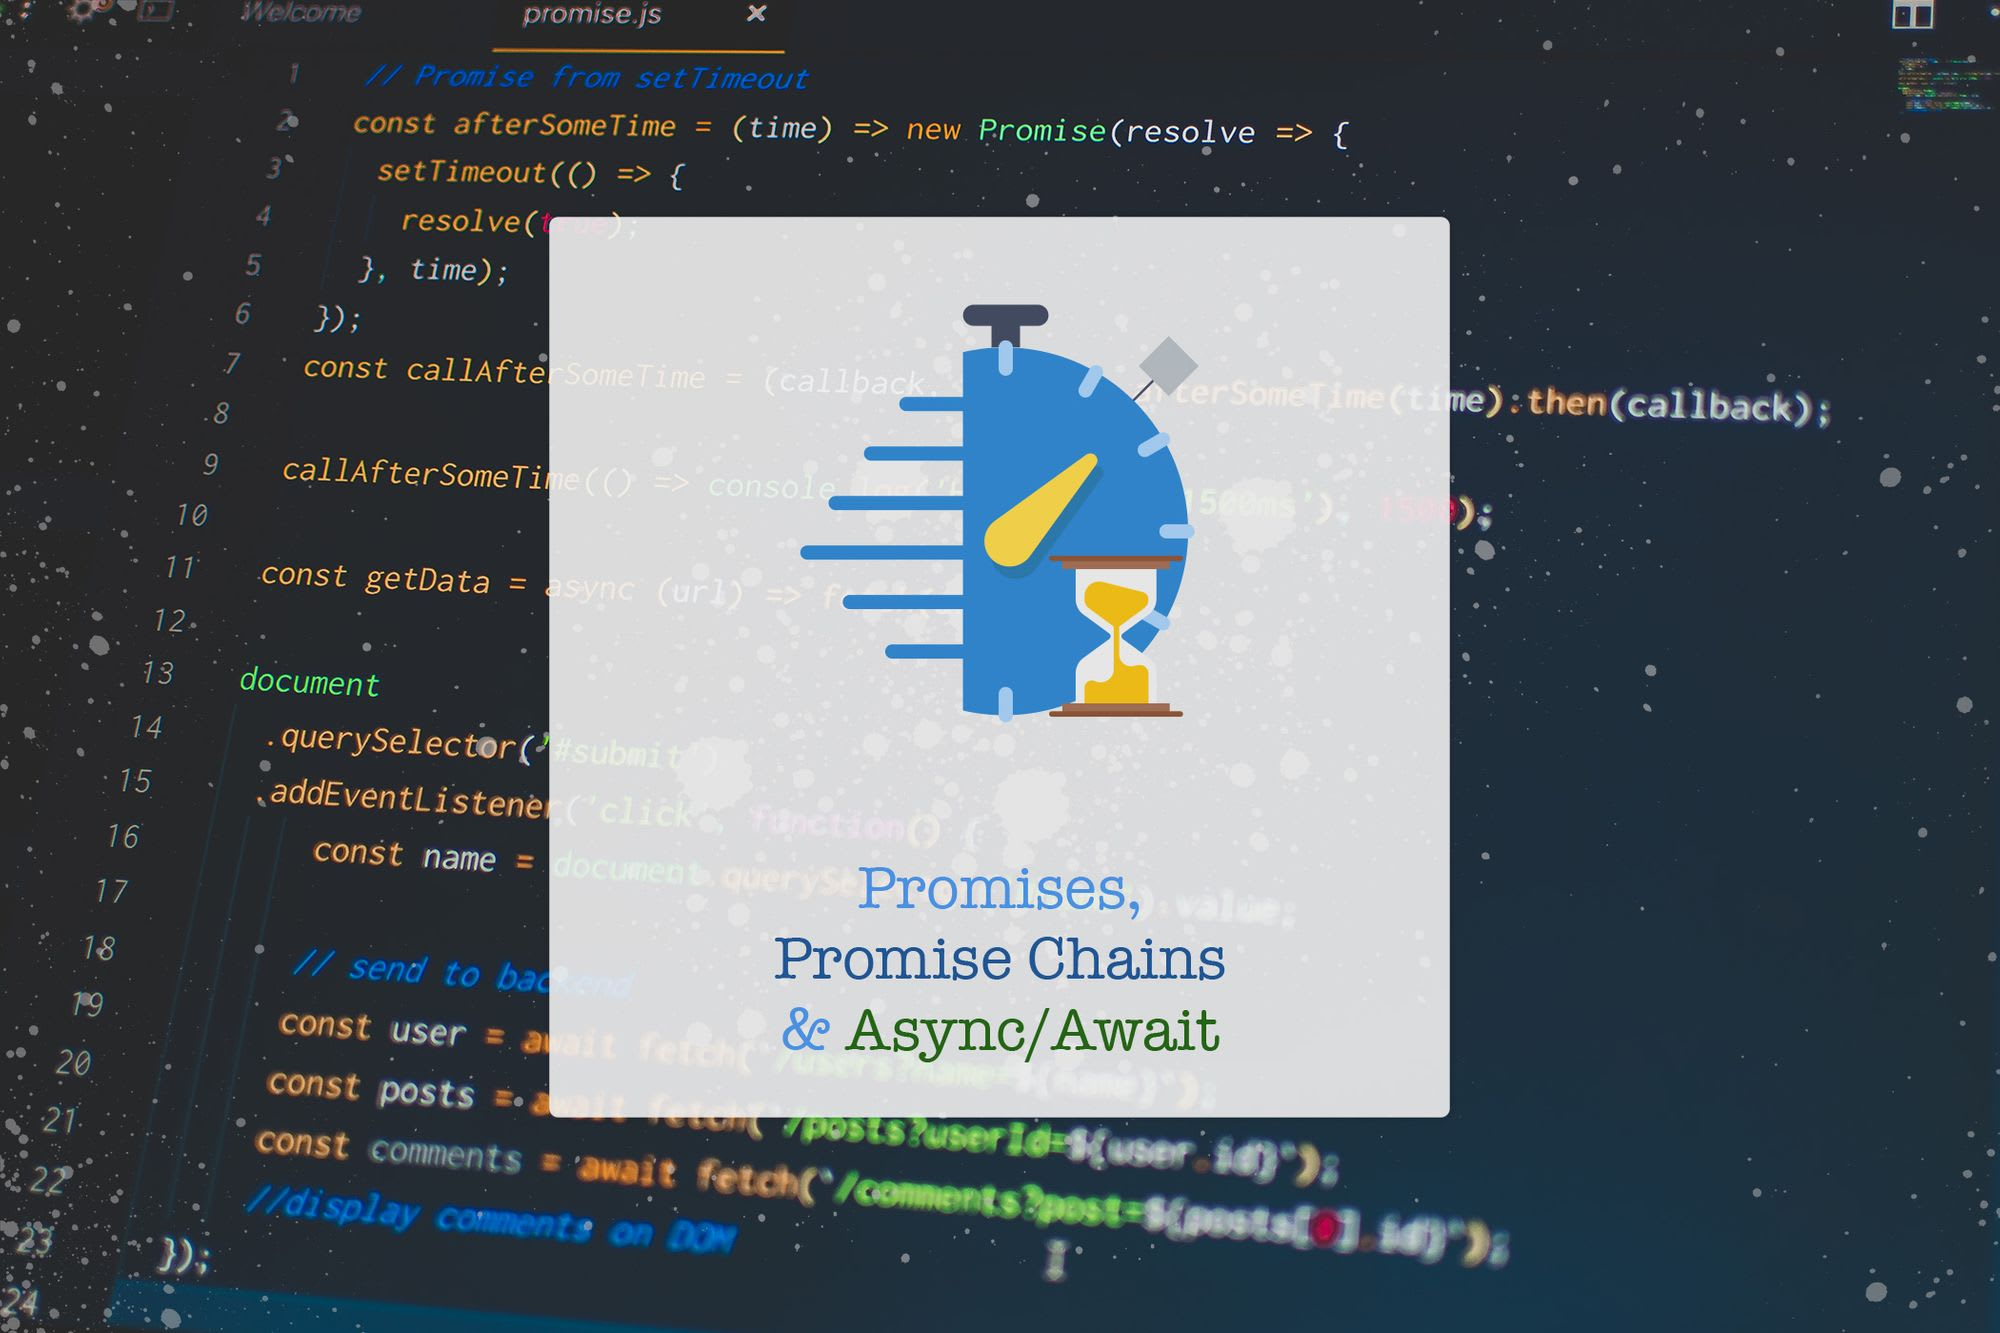 Promises, Promise Chain and Async/Await - Time to Hack